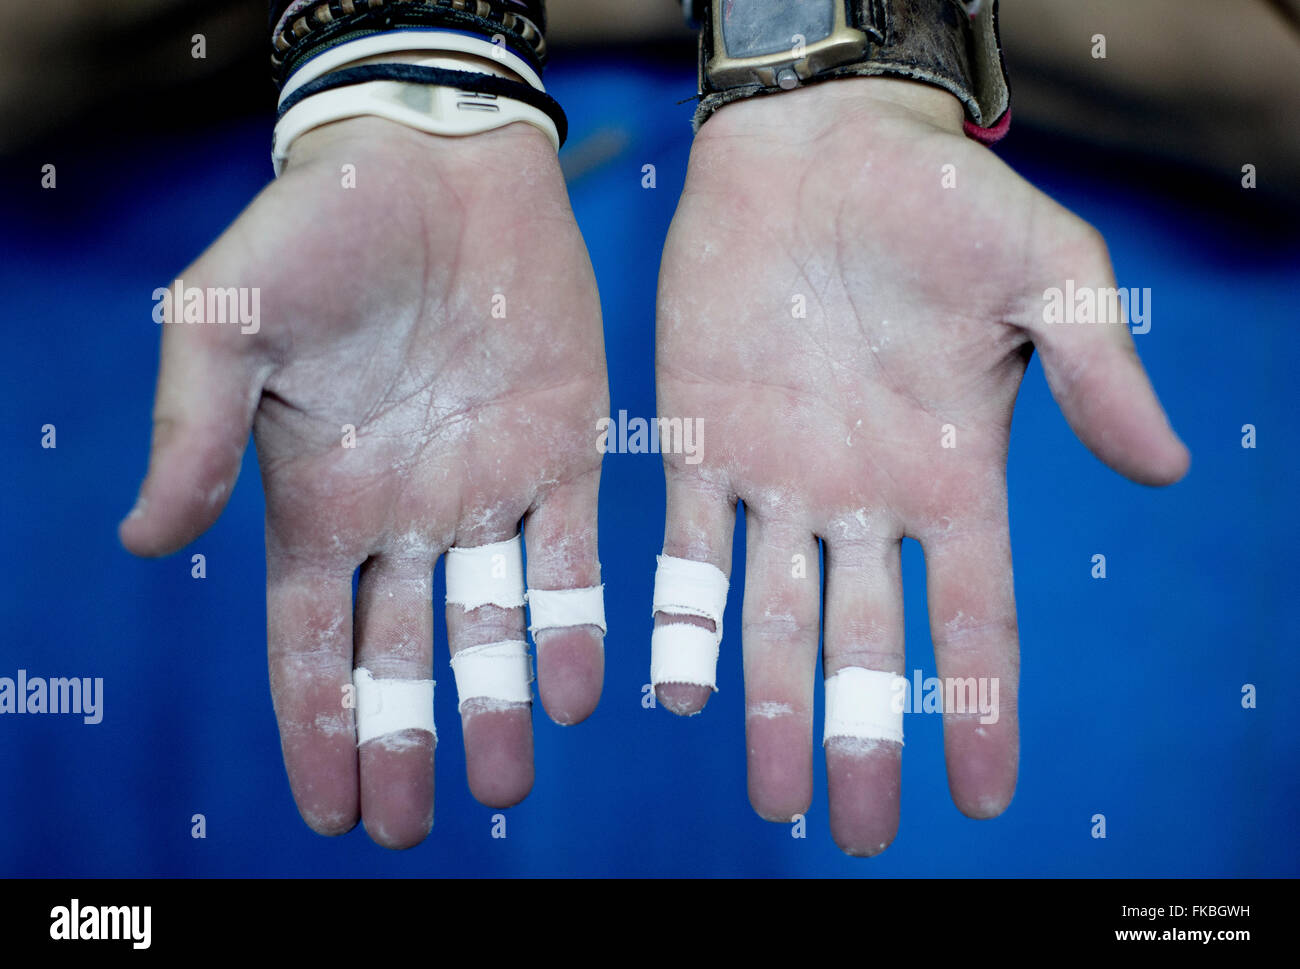 A close up of climbers hands at a bouldering competition at The Climbing Academy, Bristol. - Stock Image